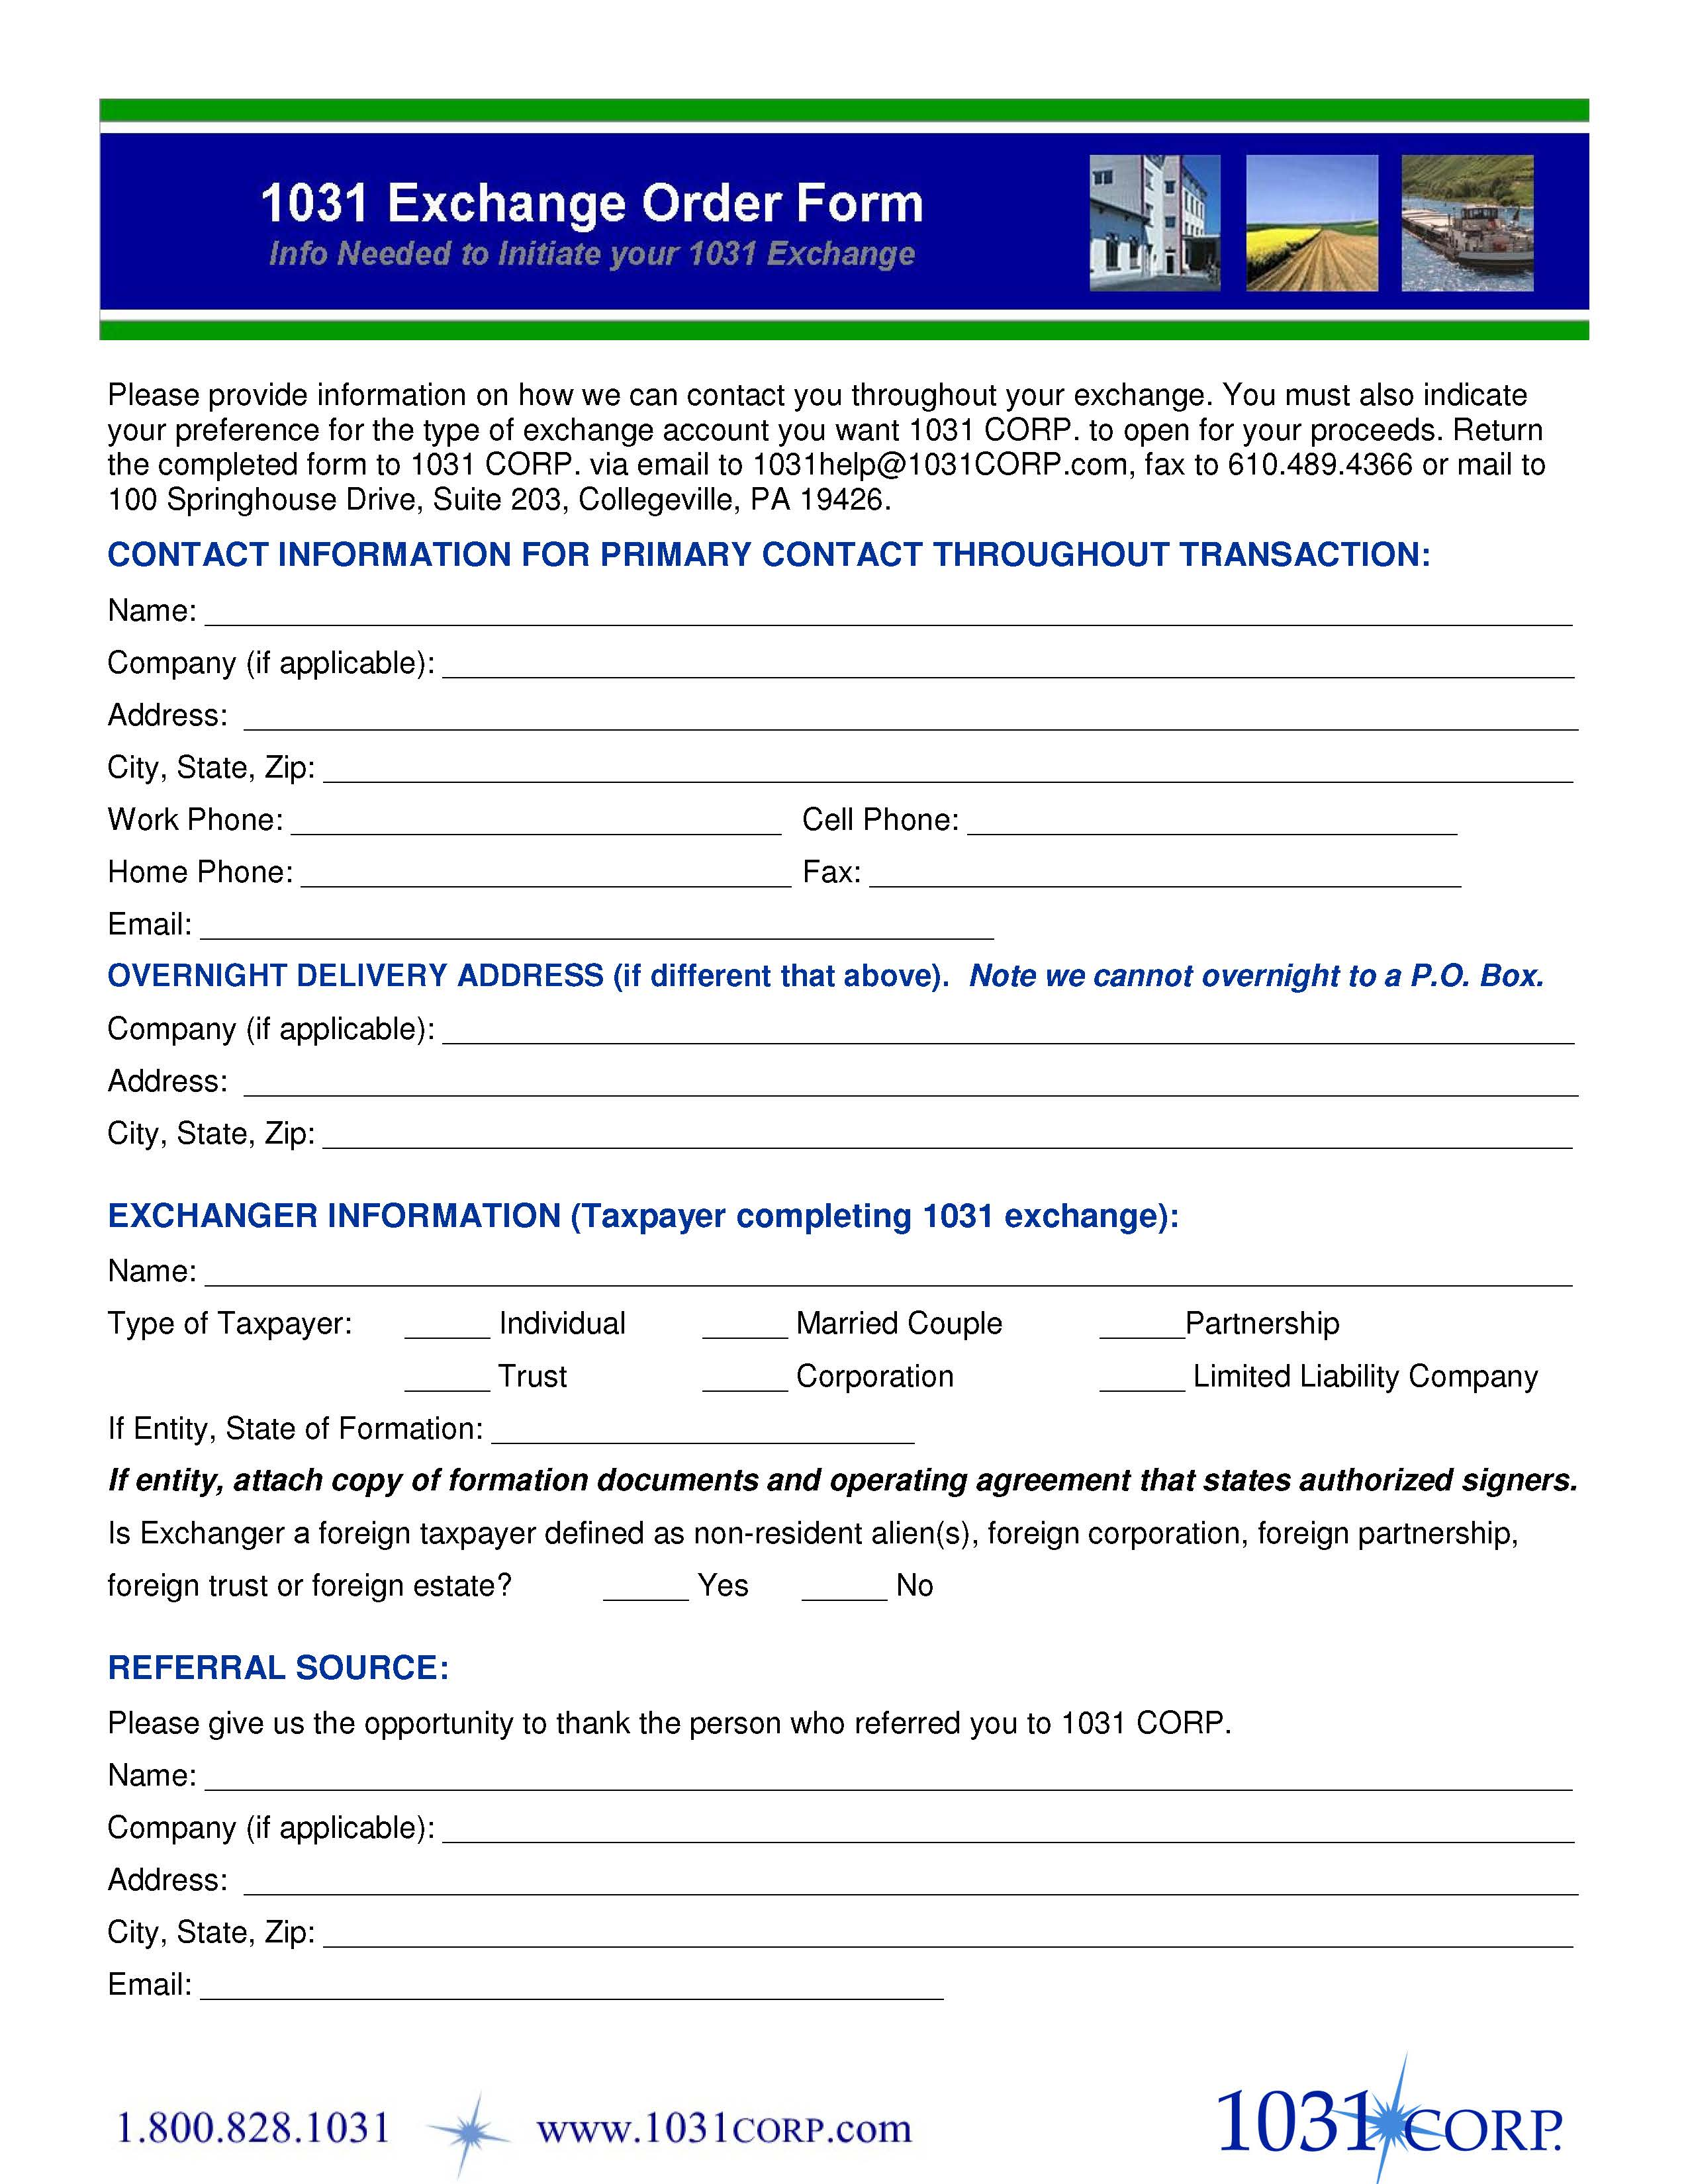 1031 CORP. ORDER FORM_2018_Page_1